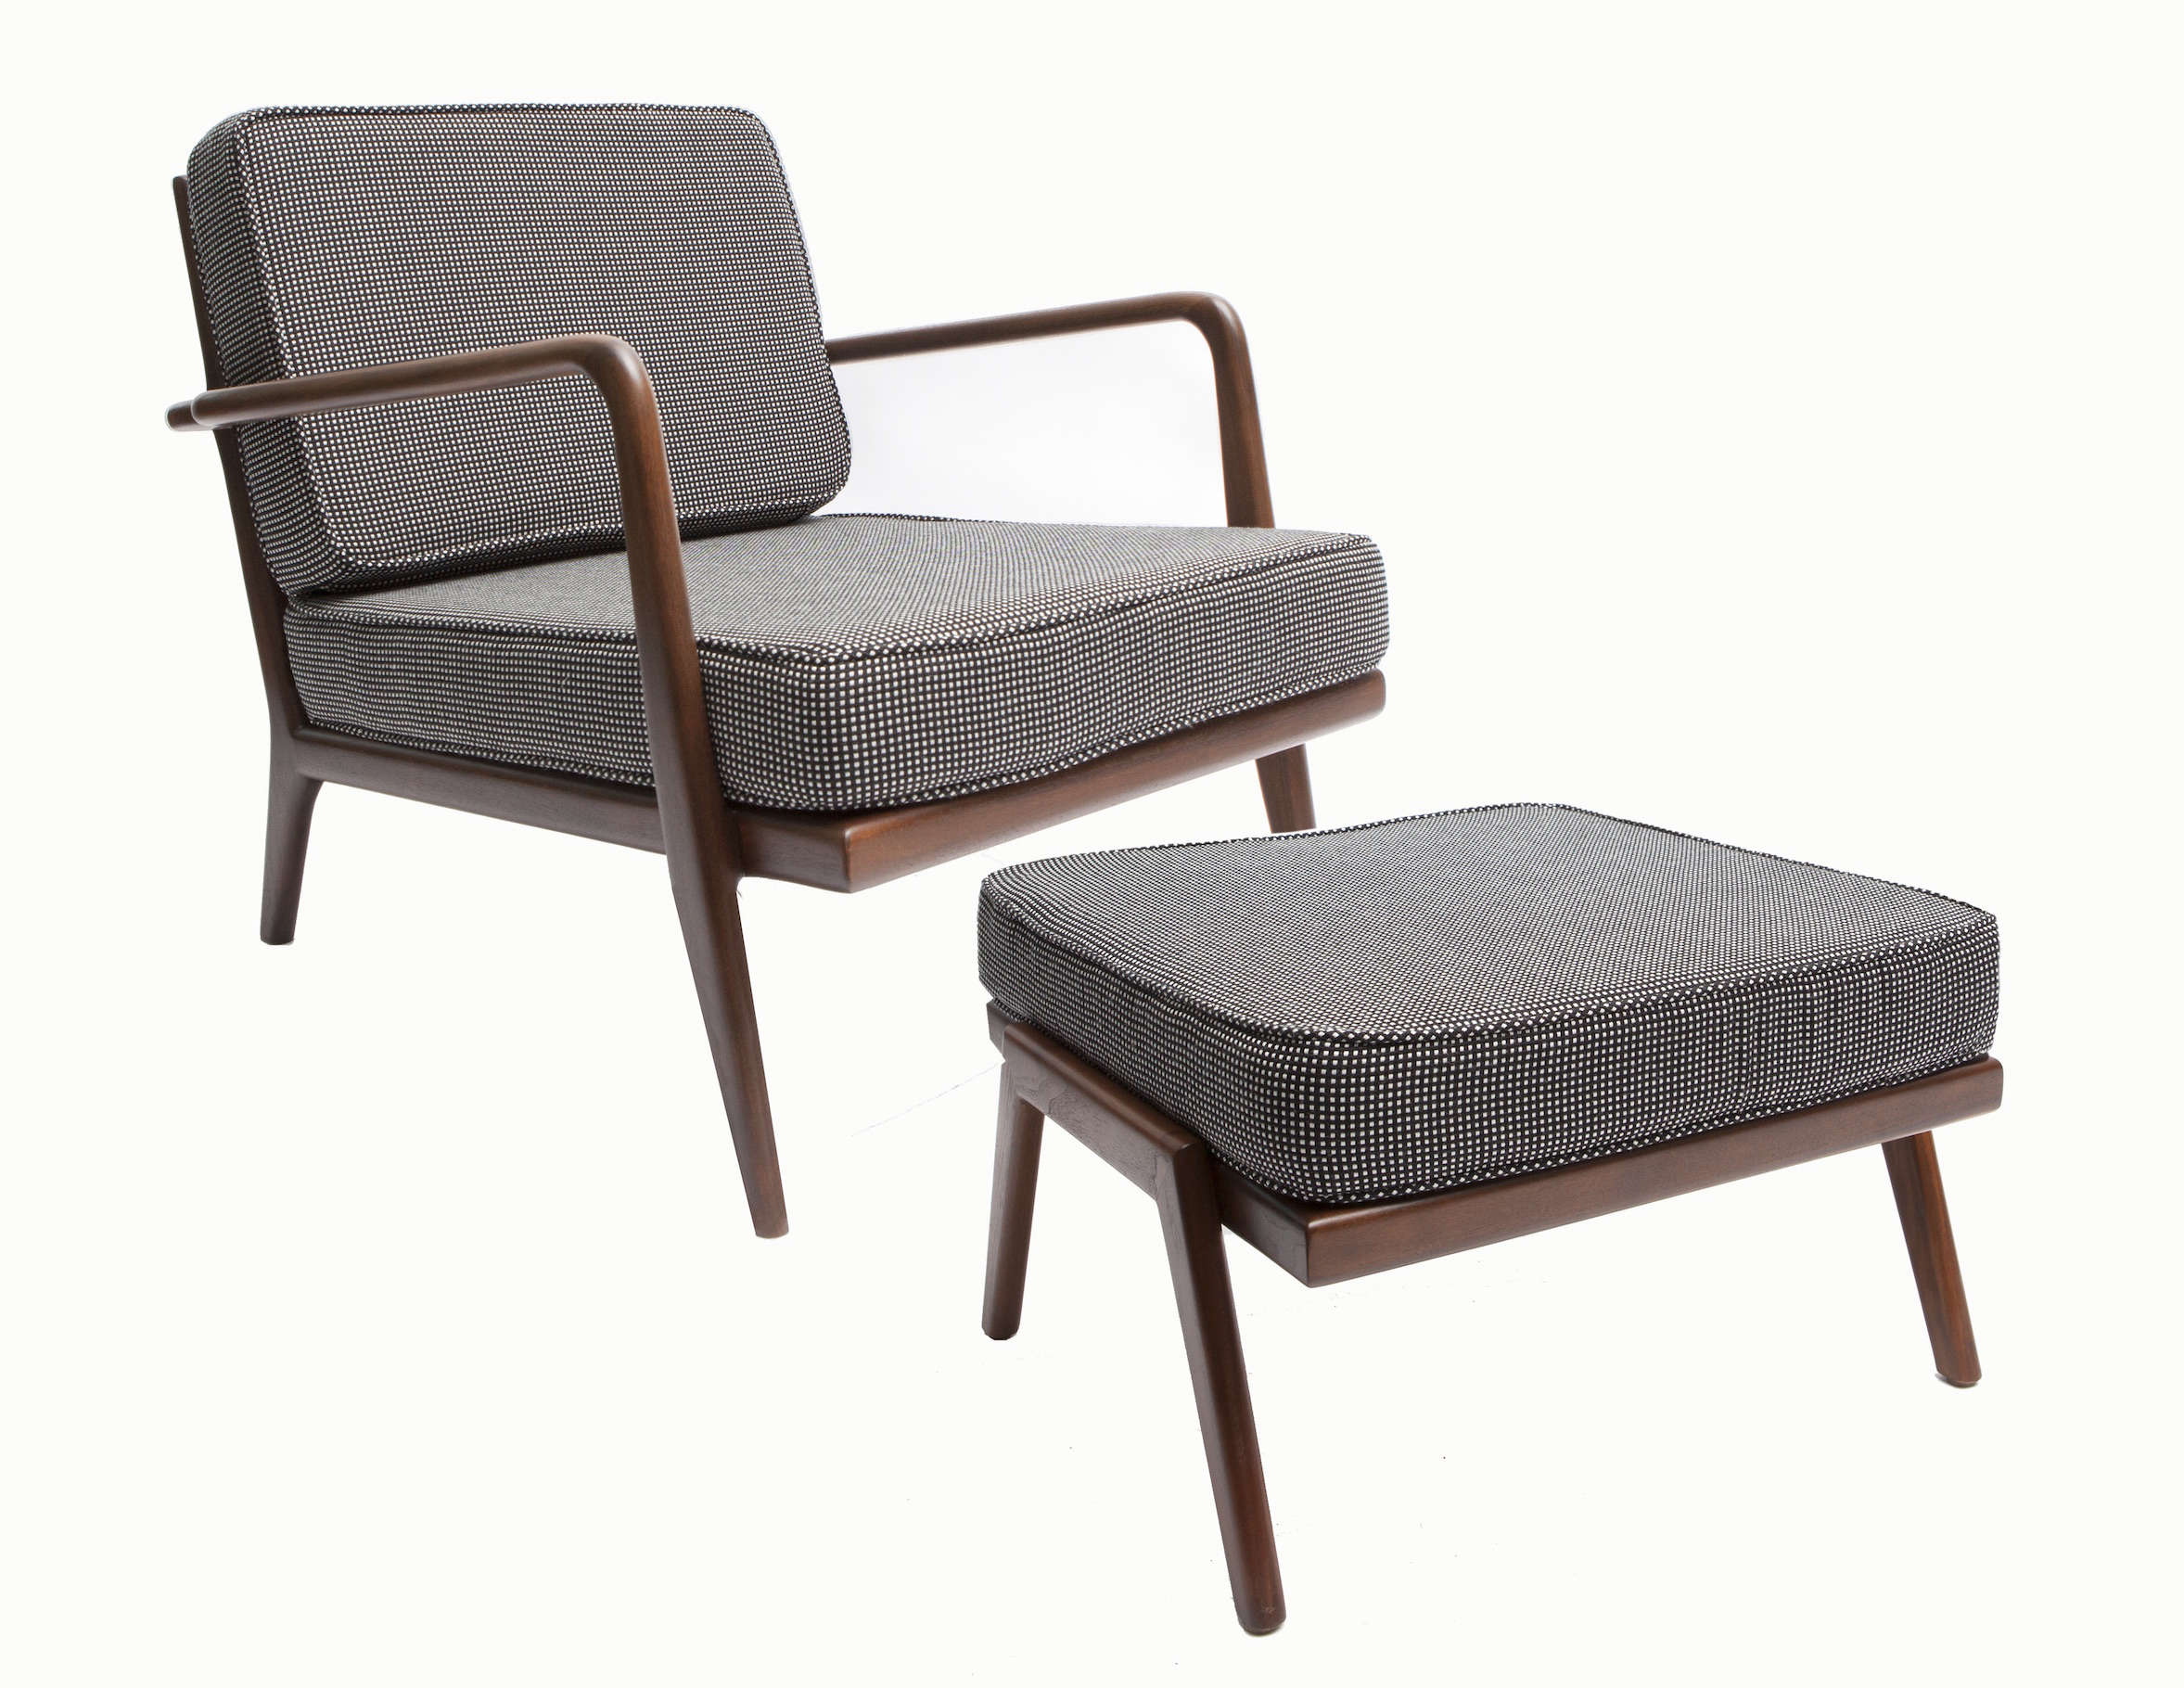 Smilow Furniture armchair and ottoman, a revived midcentury design | Remodelista